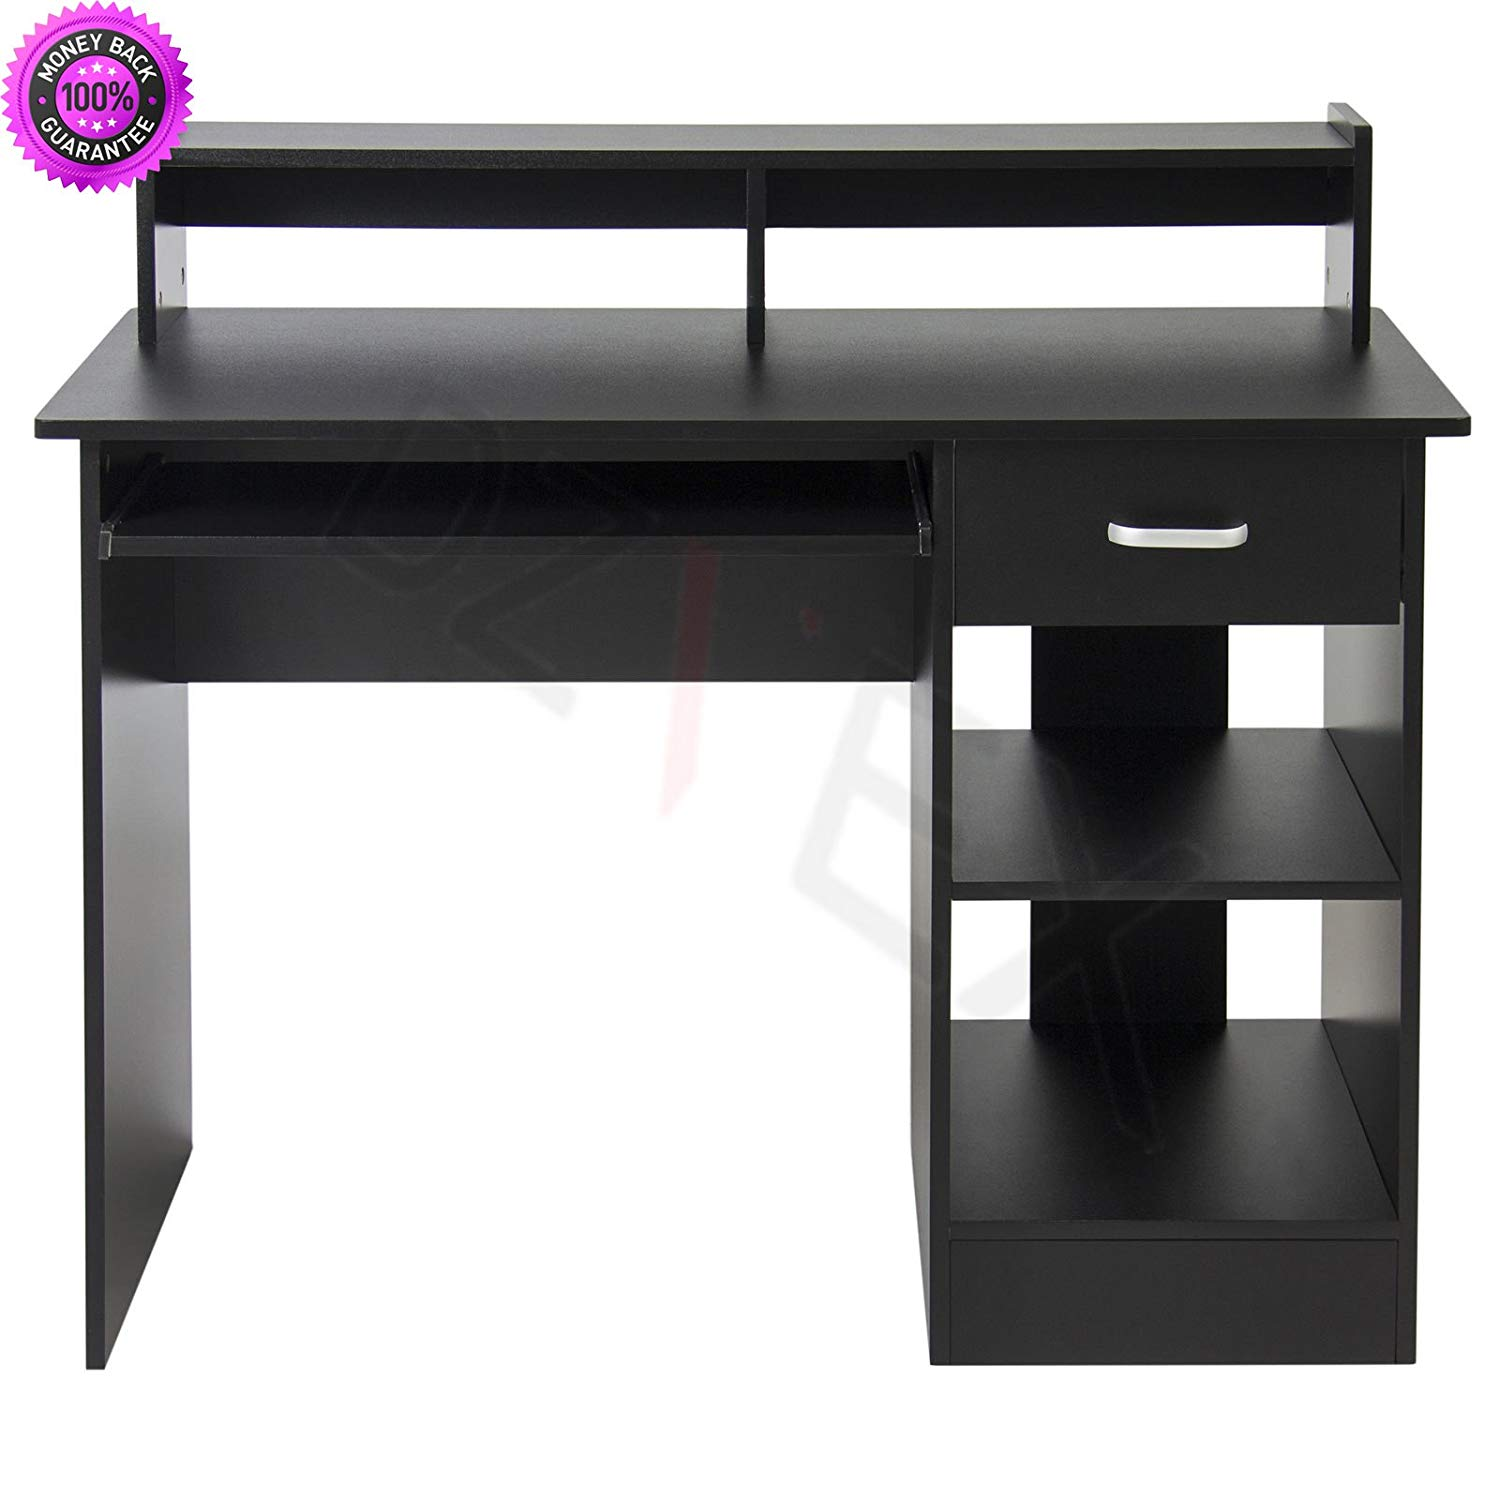 DzVeX__Computer Desk Home Laptop Table College Home Office Furniture Work Station-Black And home office desk home office furniture collections modular home office furniture office furniture